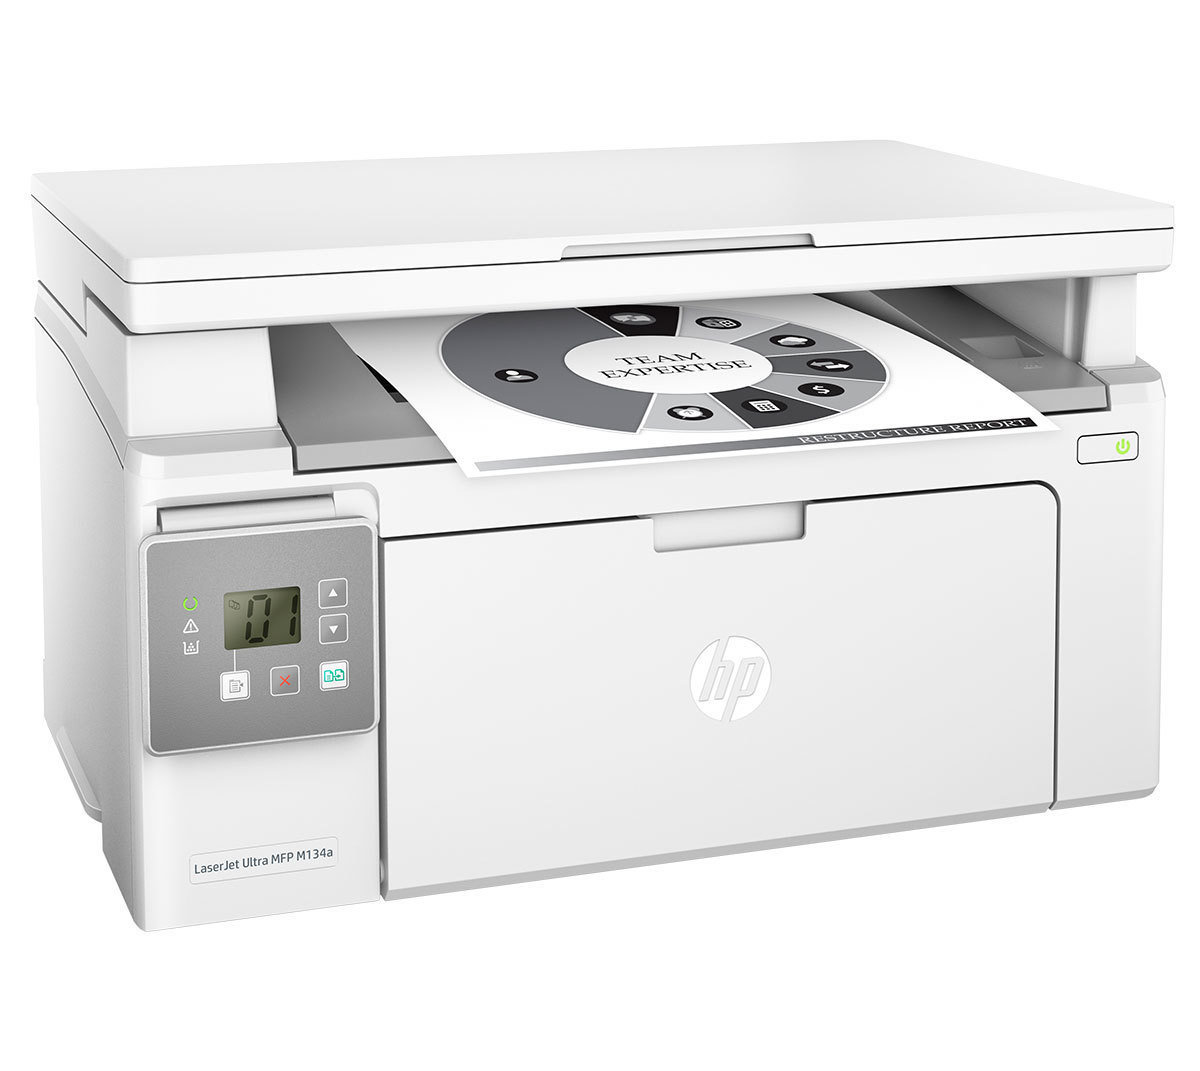 HP Ultra MFP M134a All In One Laser Printer